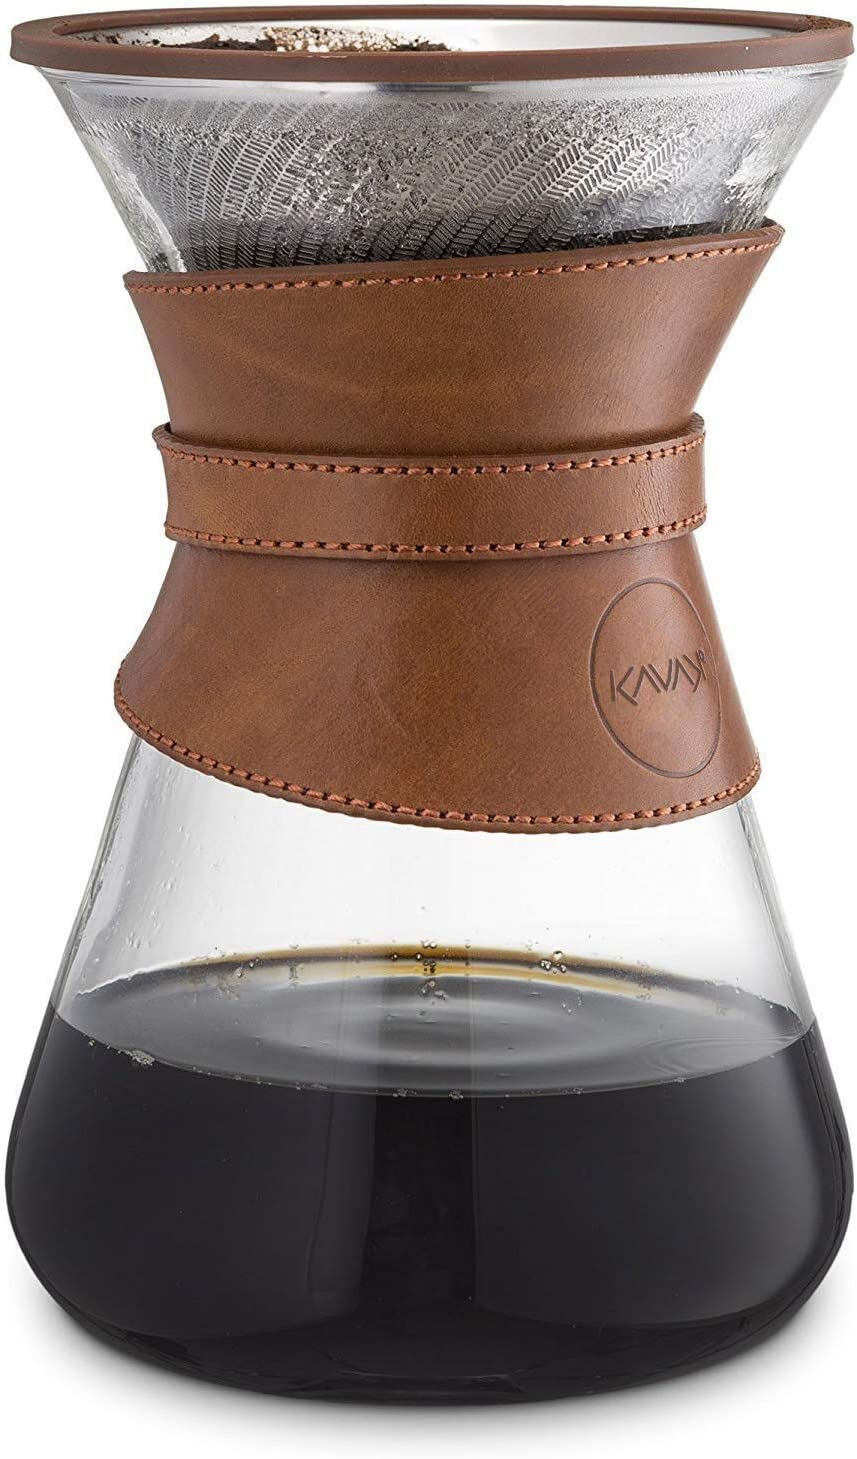 Kavako Pour Over Coffee Maker with Reusable Stainless Steel Drip Filter, 37 oz (7-Cup) Glass Carafe and Lid, Leather Collar Holder